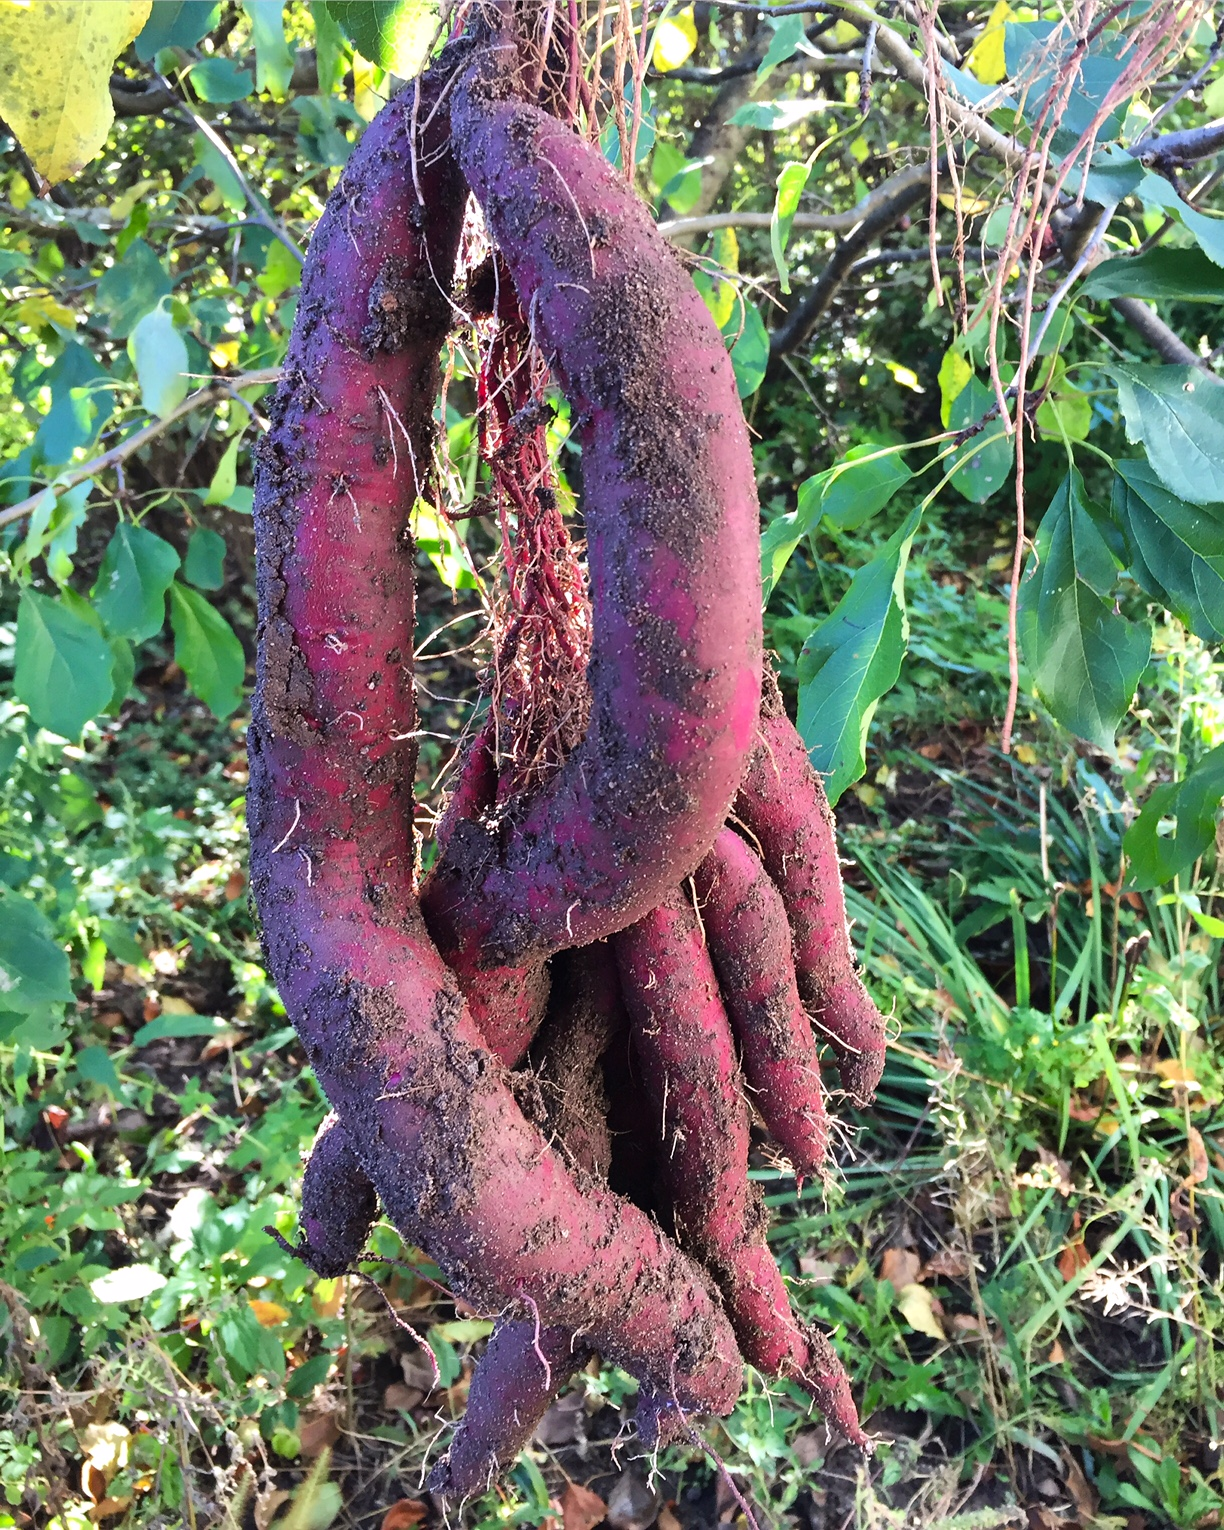 Purple sweet potatoes zone 4, Homestead Monthly: September 2016 {purple veggies, mushroom hunting, and canning} | Whole-Fed Homestead